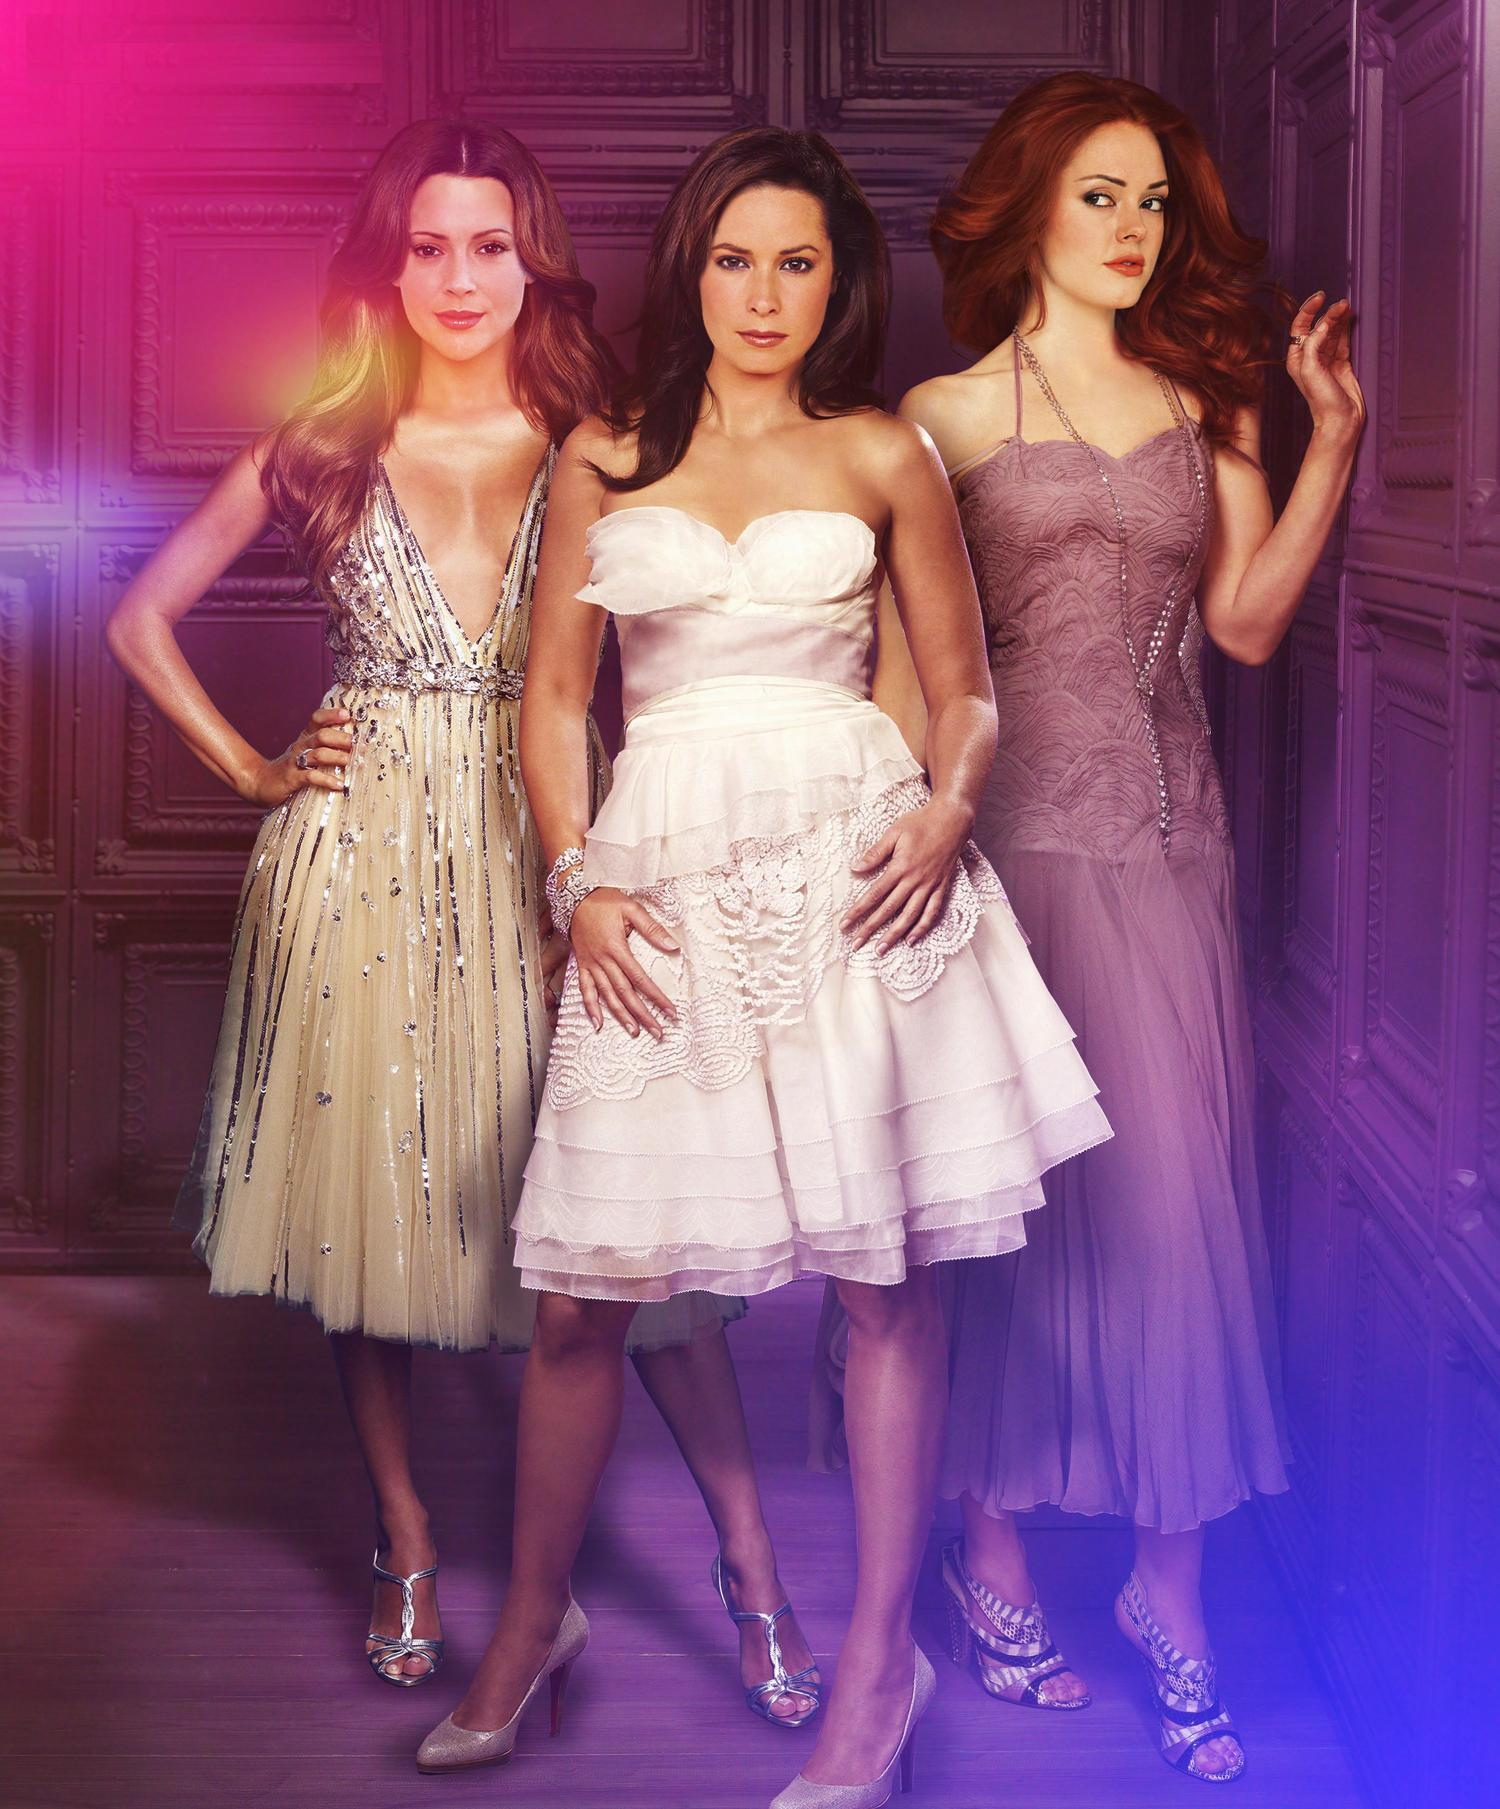 http://images2.fanpop.com/images/photos/4300000/Charmed-charmed-4384071-1500-1809.jpg